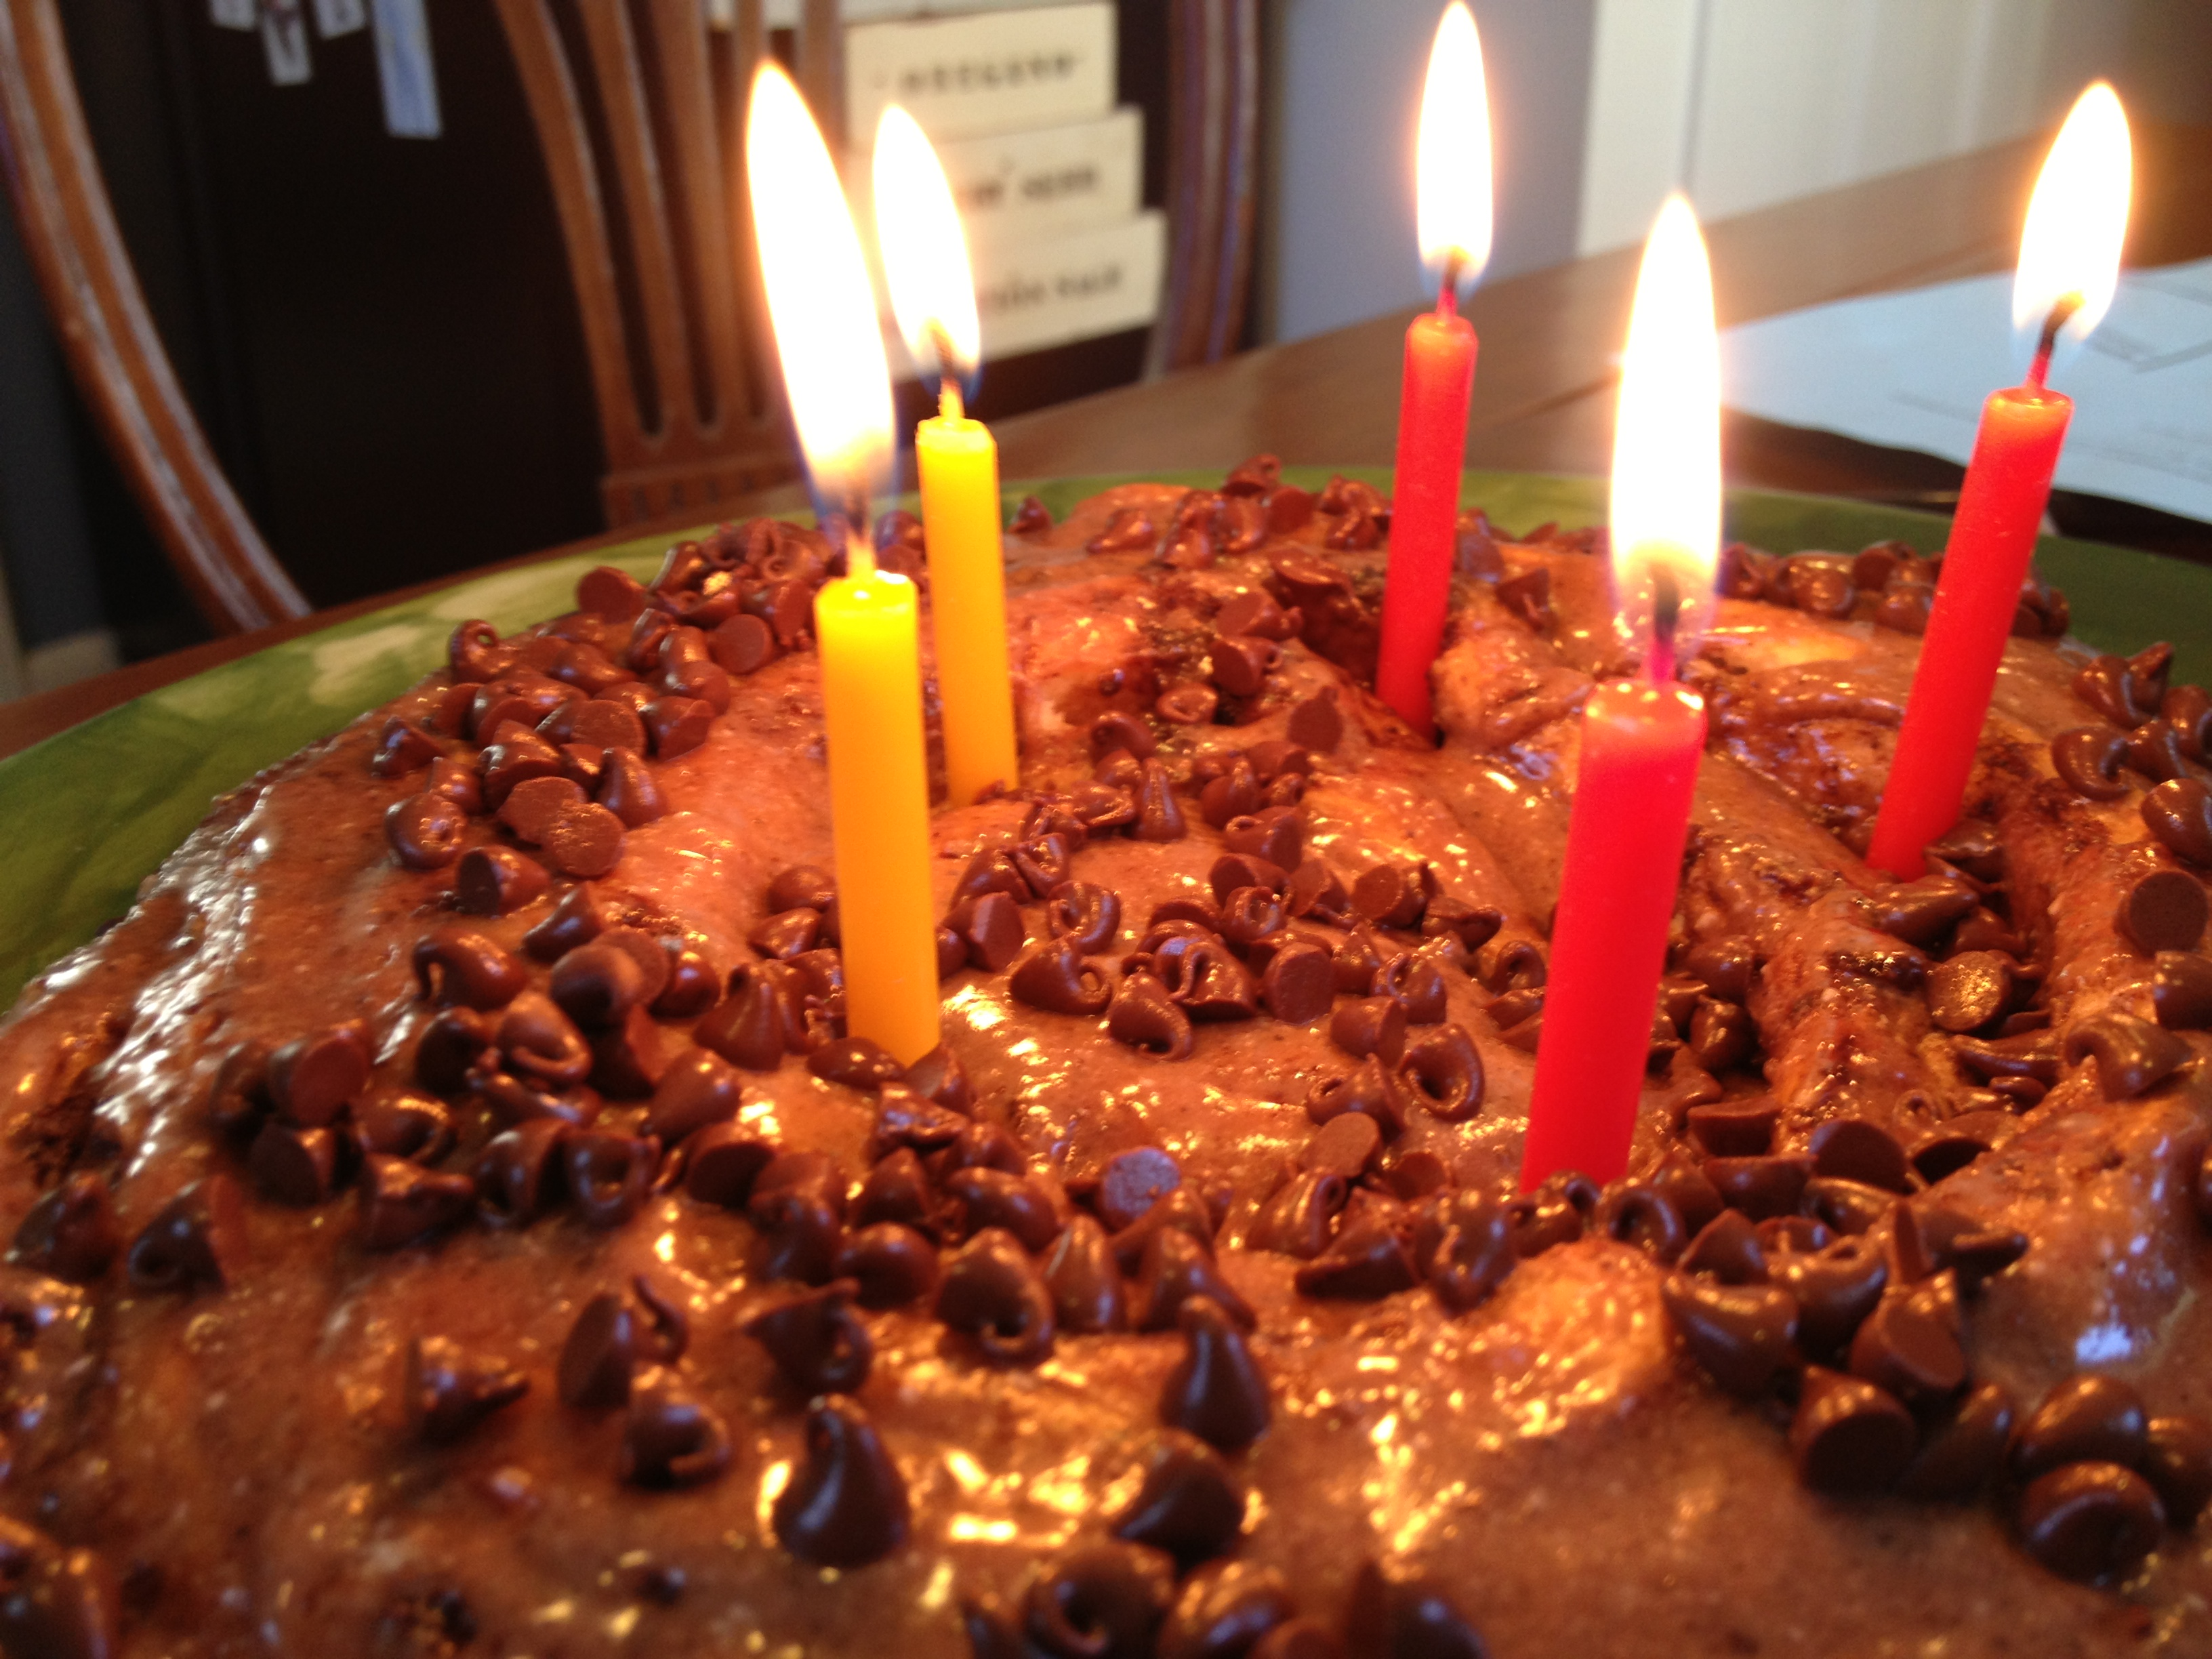 Emergency Birthday Cake Chocolate Rolls Goodies Yum X